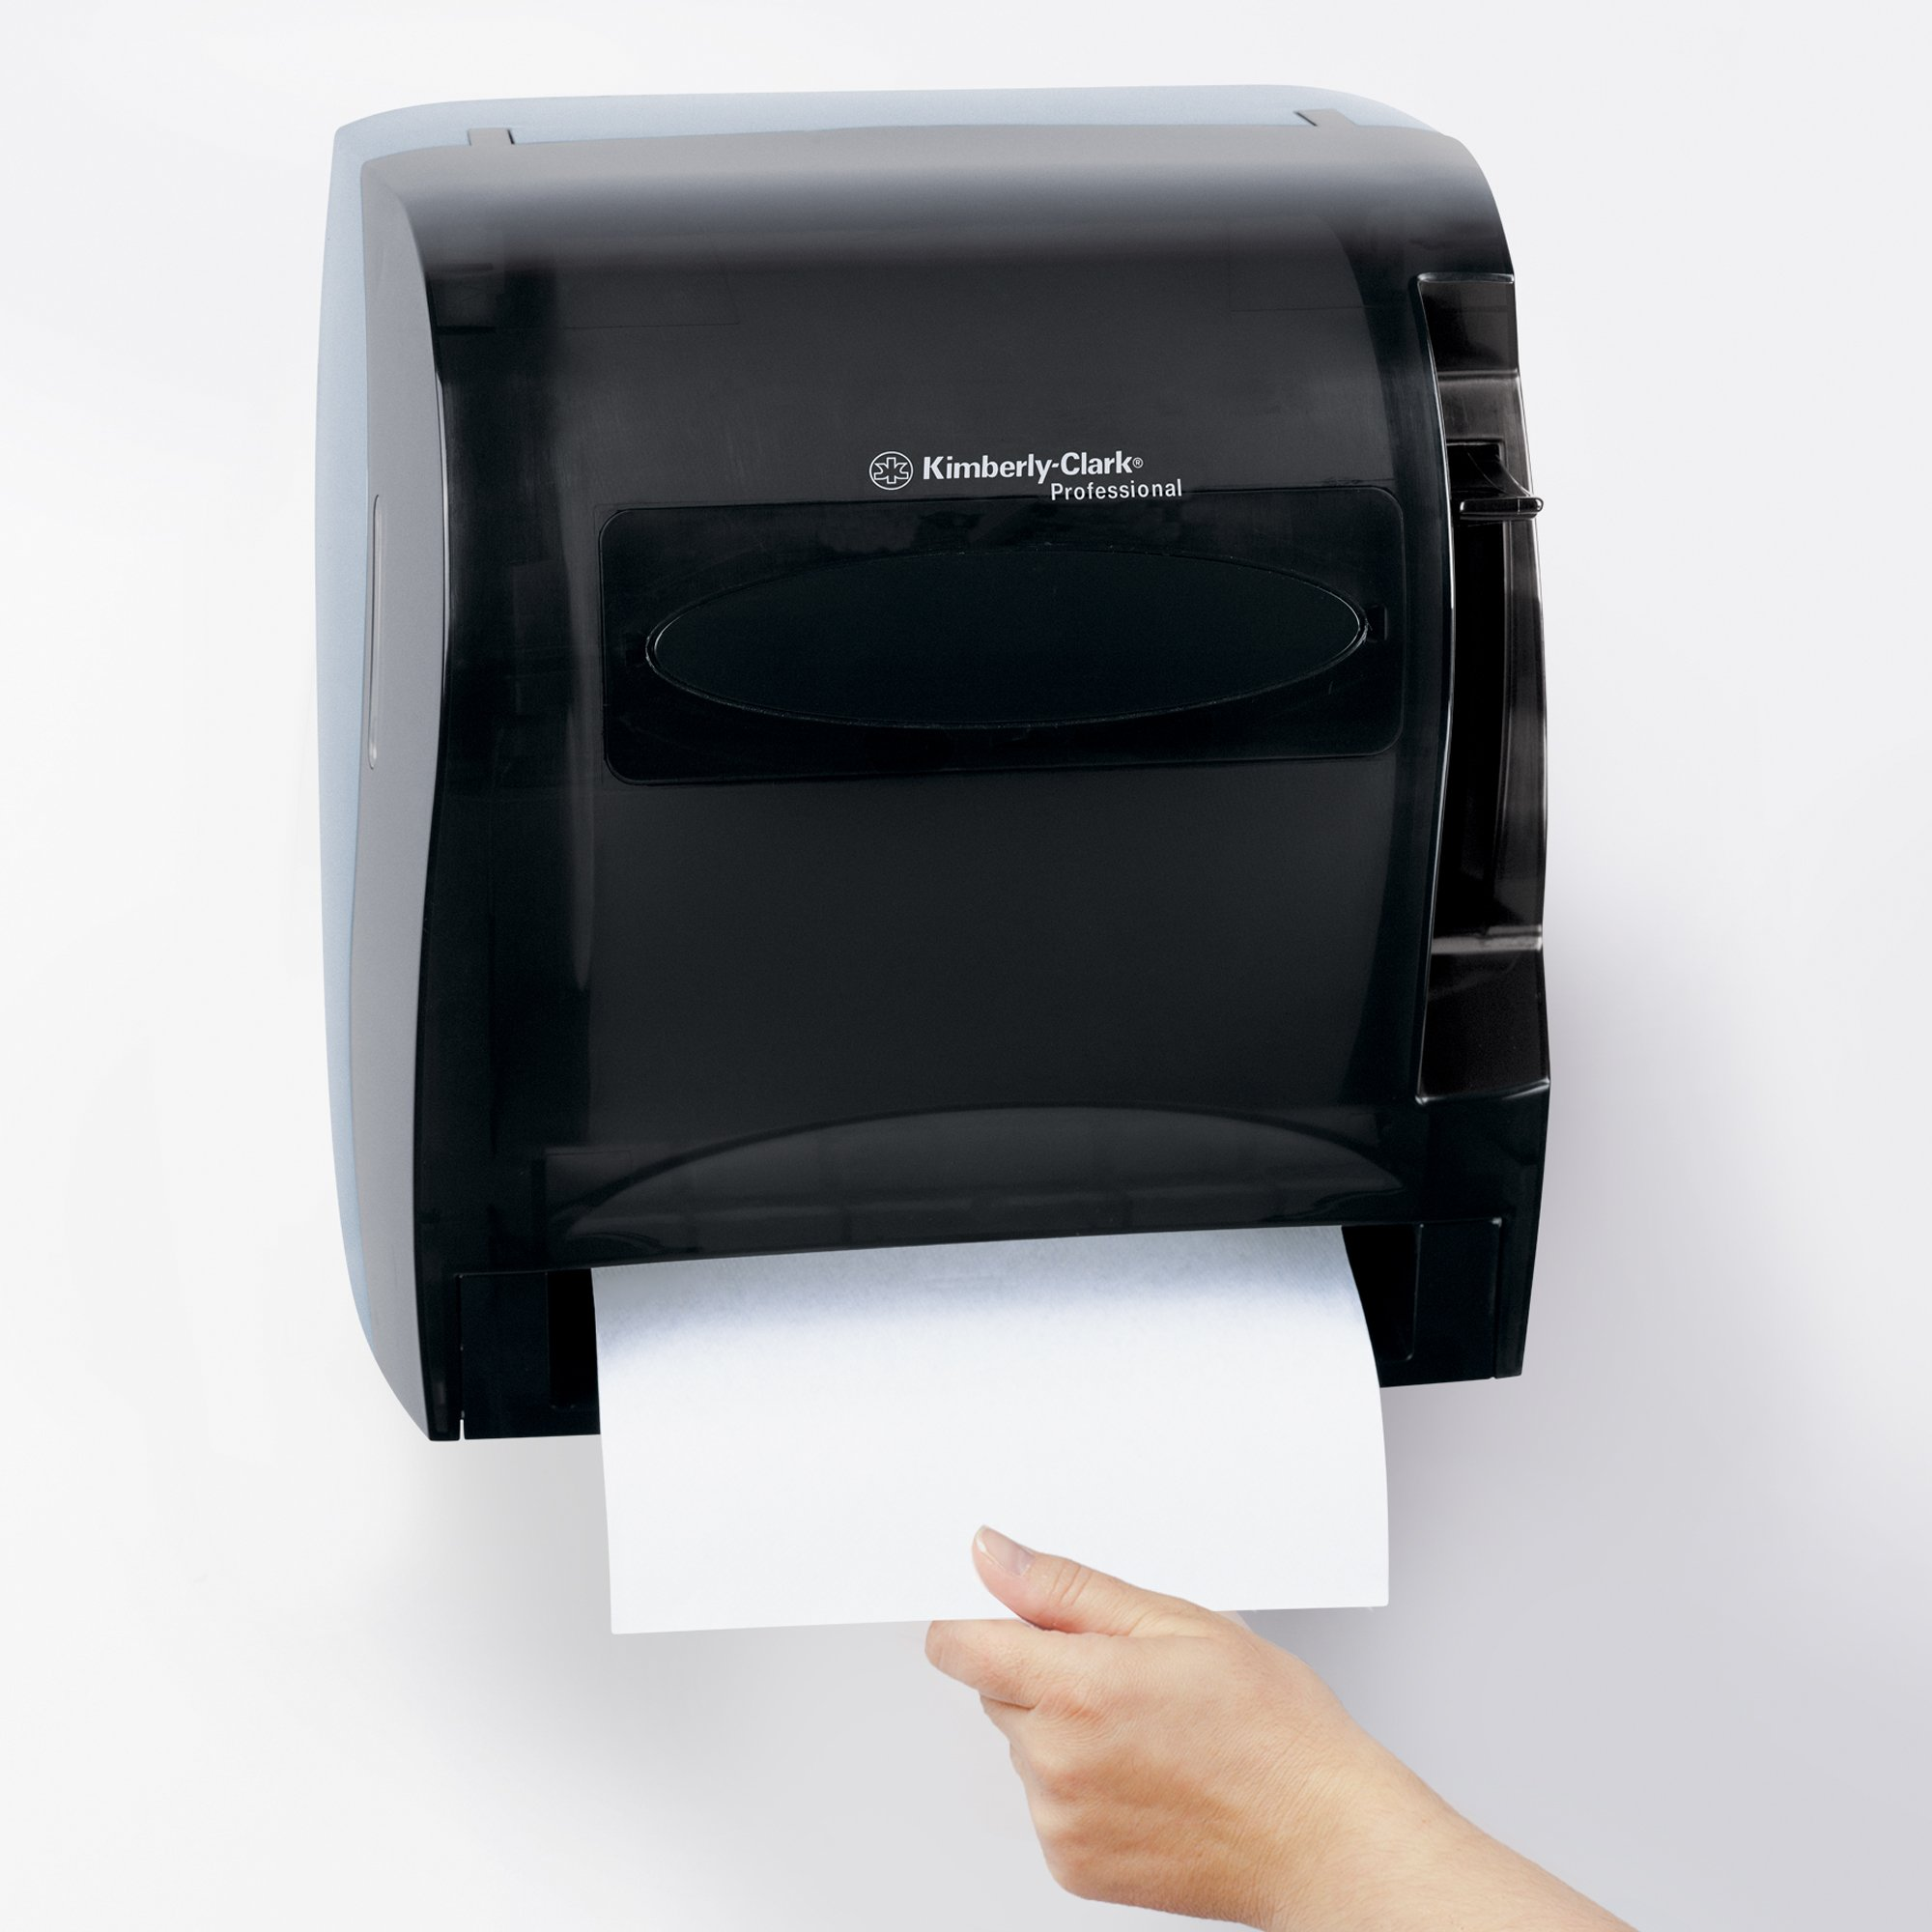 Kimberly Clark Levermatic Roll Paper Towels Dispenser (09765), Manual, Smoke (Black) by Kimberly-Clark Professional (Image #6)